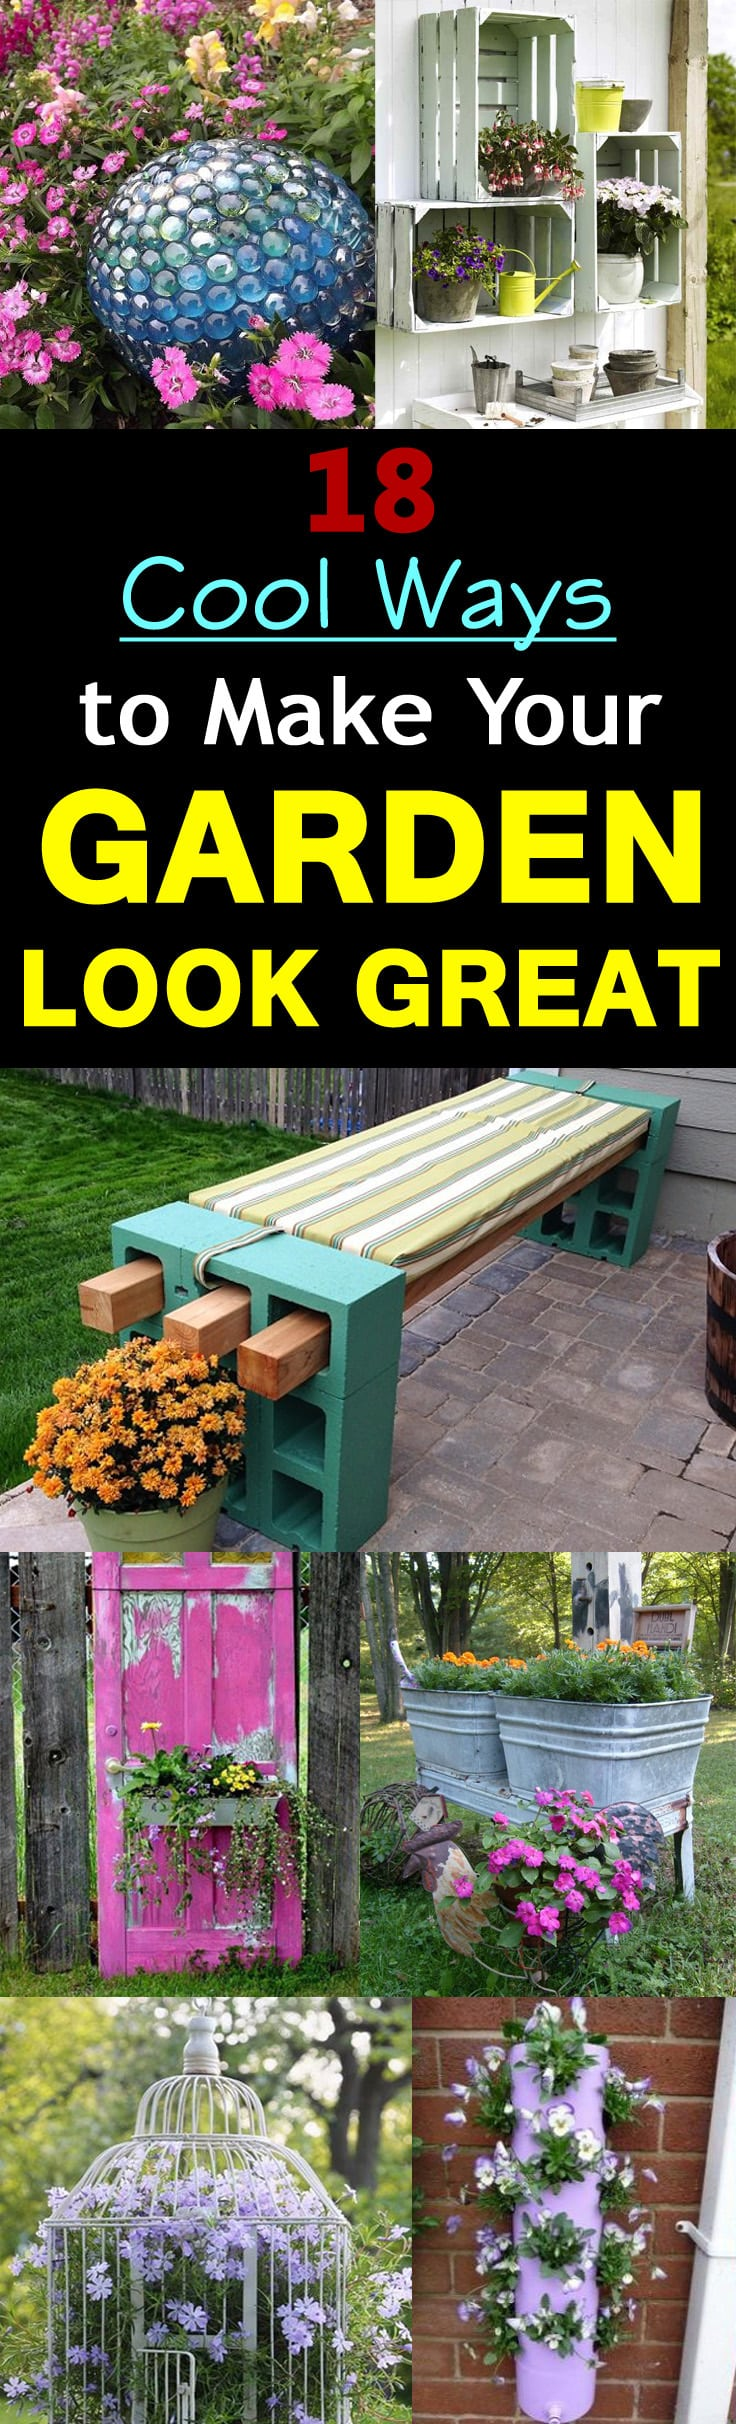 18 Cool DIY Ideas To Make Your Garden Look Great | Balcony ... on Cool Backyard Decorations id=11475